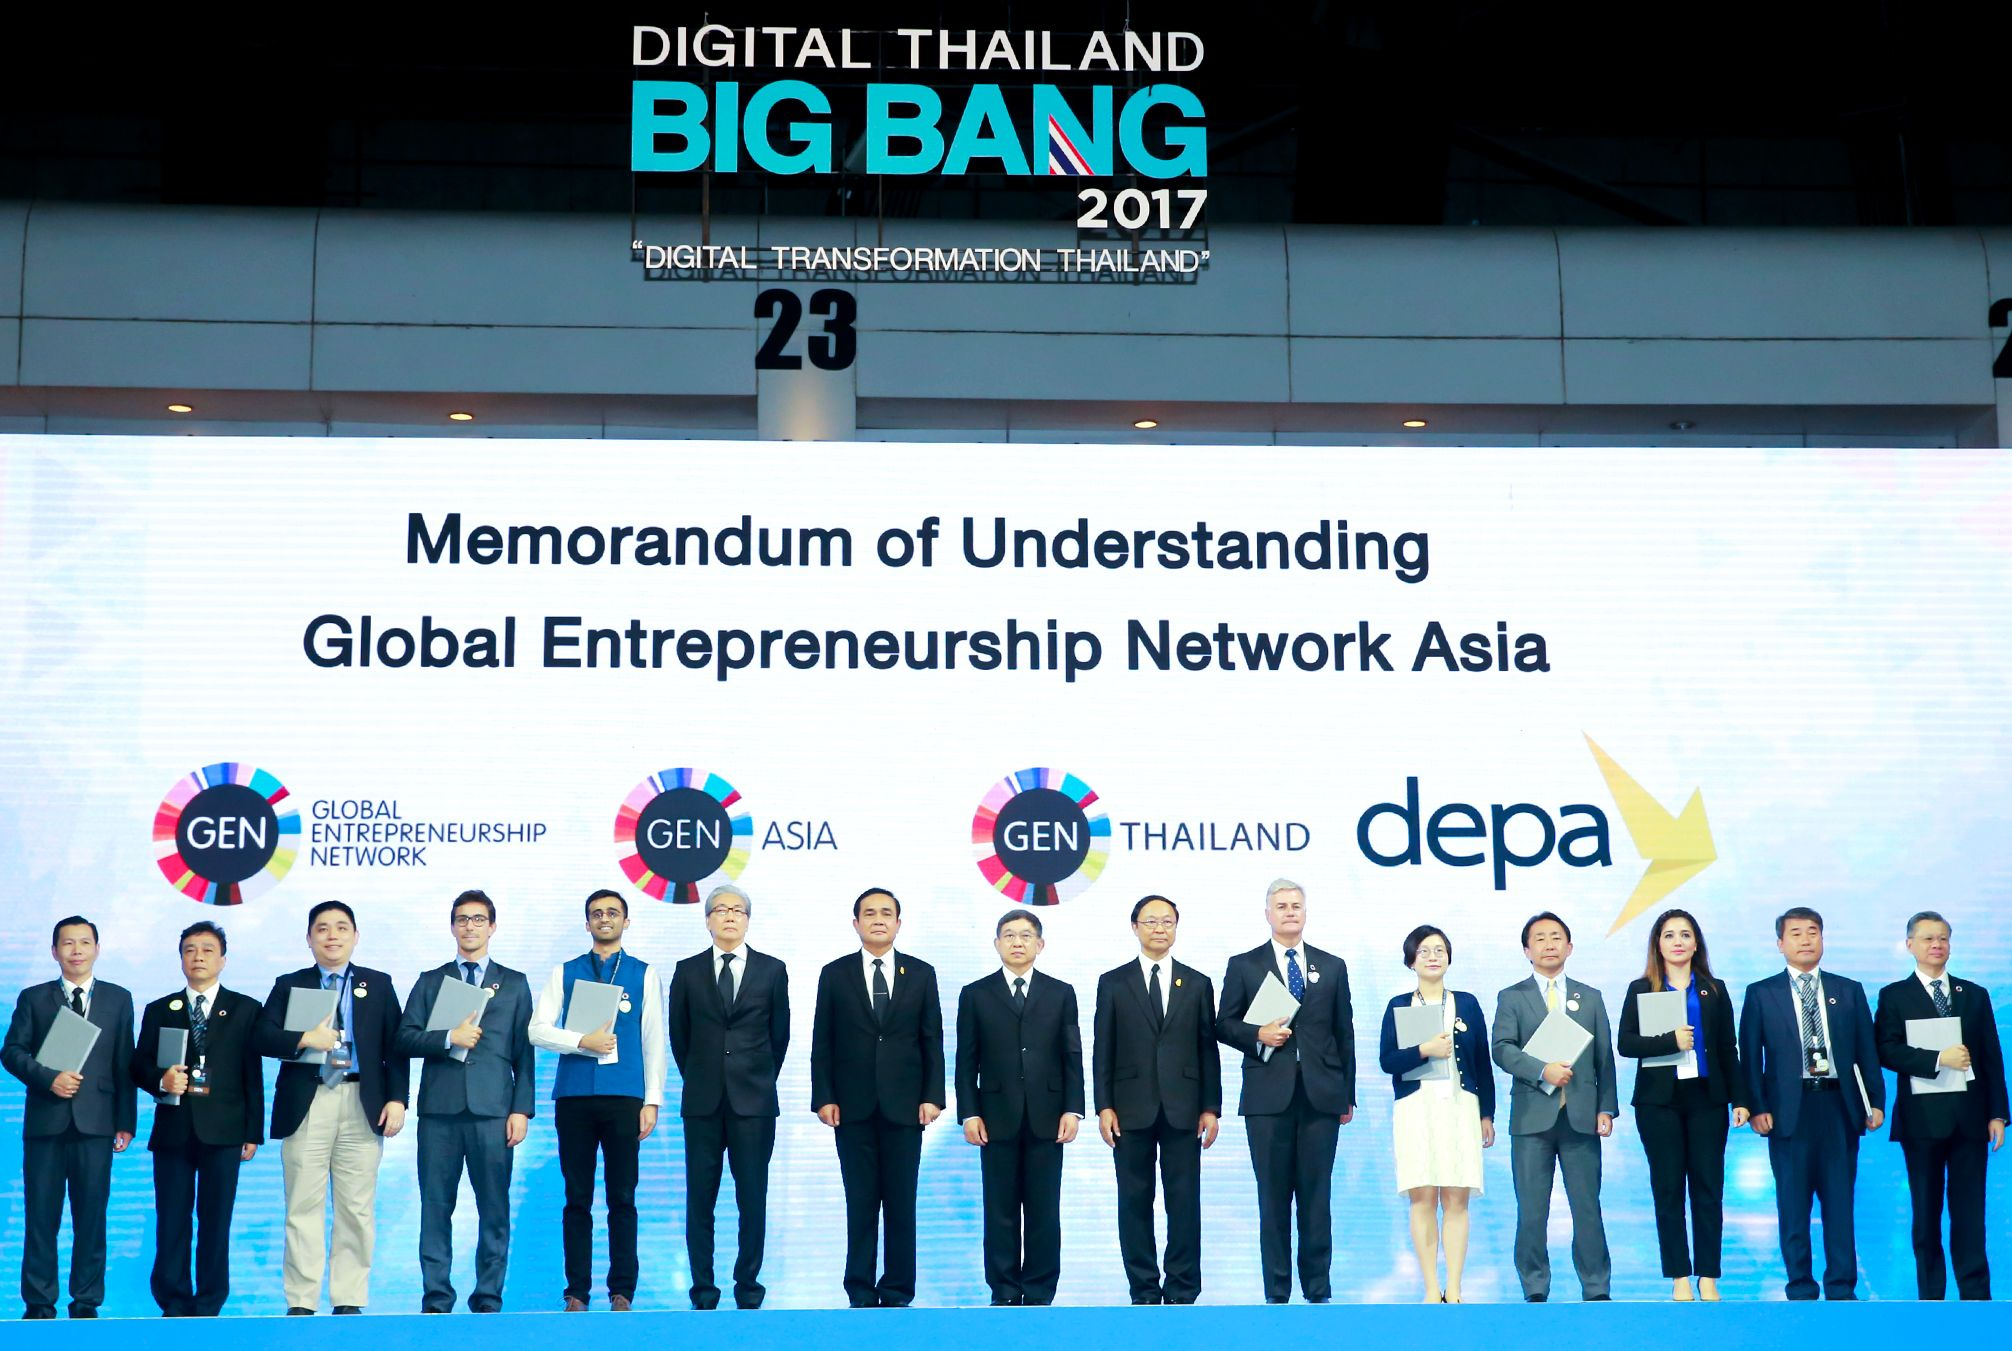 digital-thailand-big-bang-2017-opening